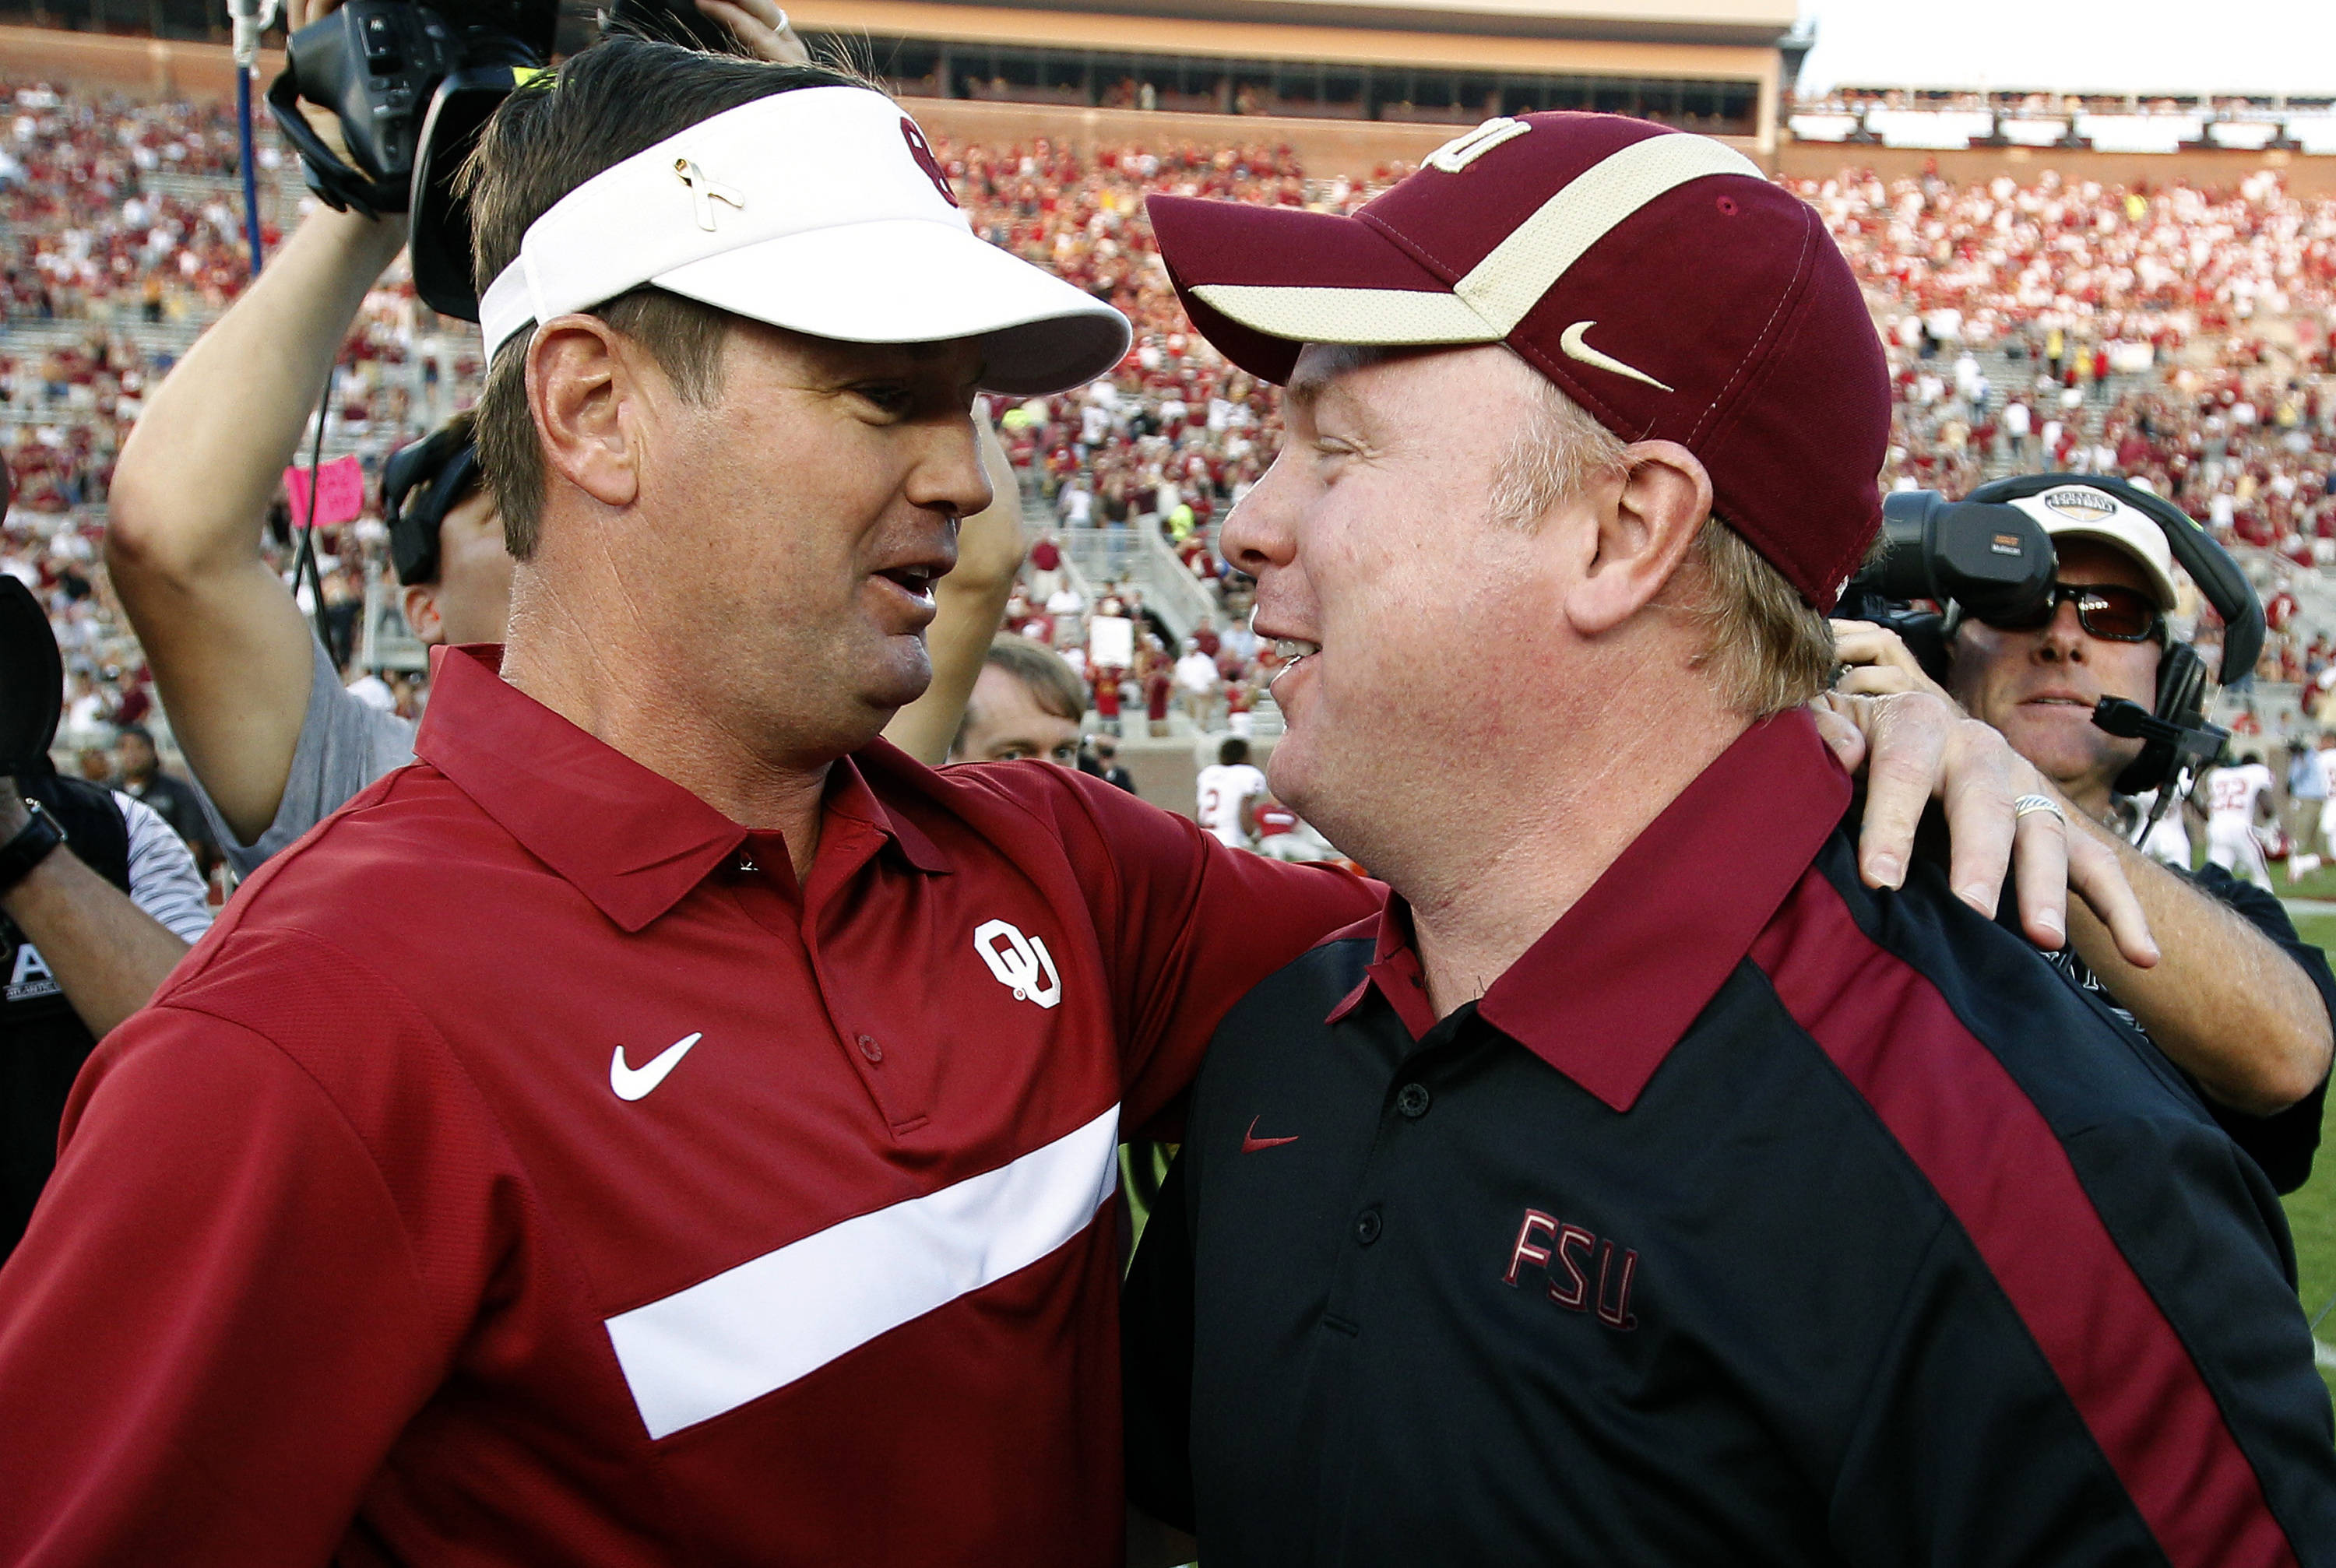 Oklahoma head coach Bob Stoops, left, hugs his brother, Florida State defensive coordinator Mark Stoops before the game. (AP Photo/Chris O'Meara)